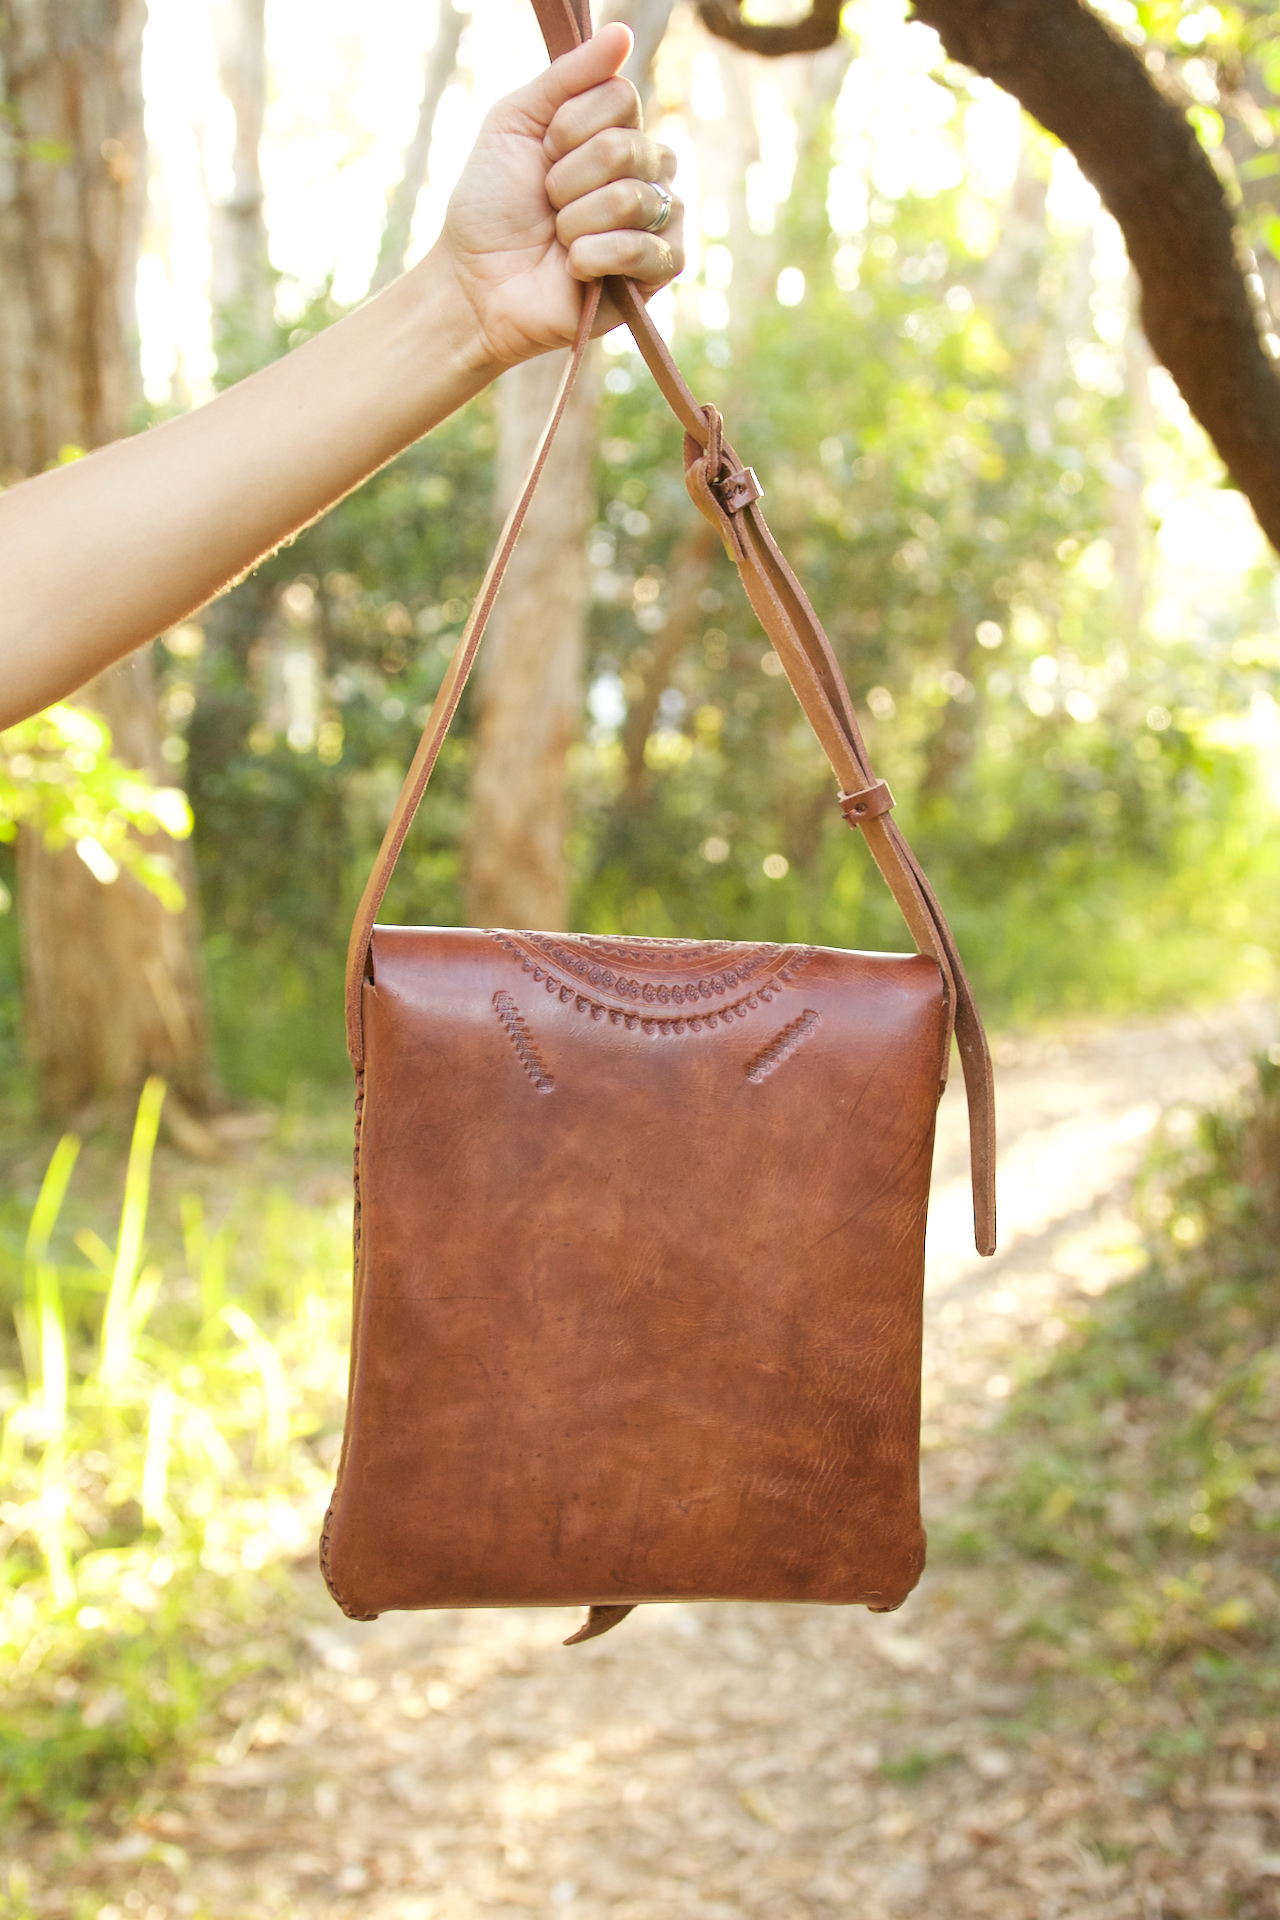 Mundo Bag  Shoulder Bag Tan - Cielo Collective handmade Mexico Guatemala